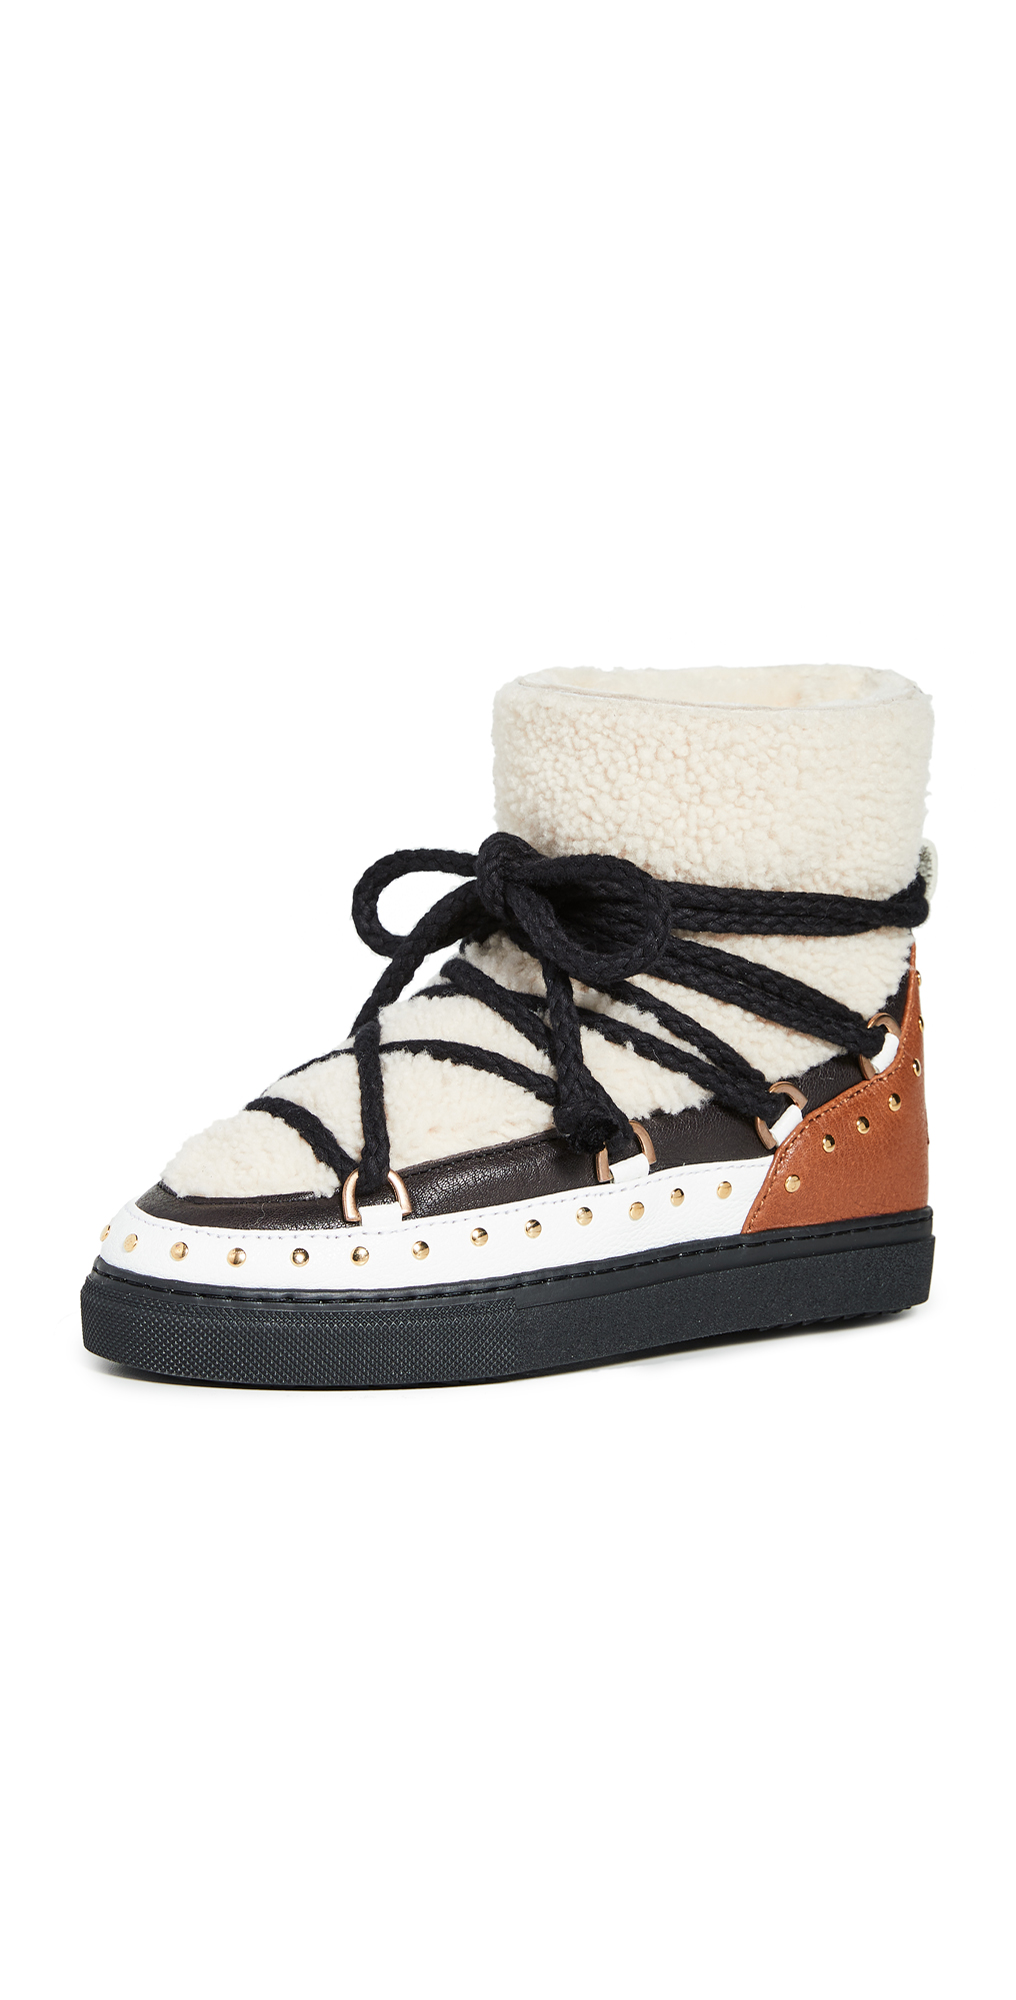 Curly Rock Shearling Sneaker Boots